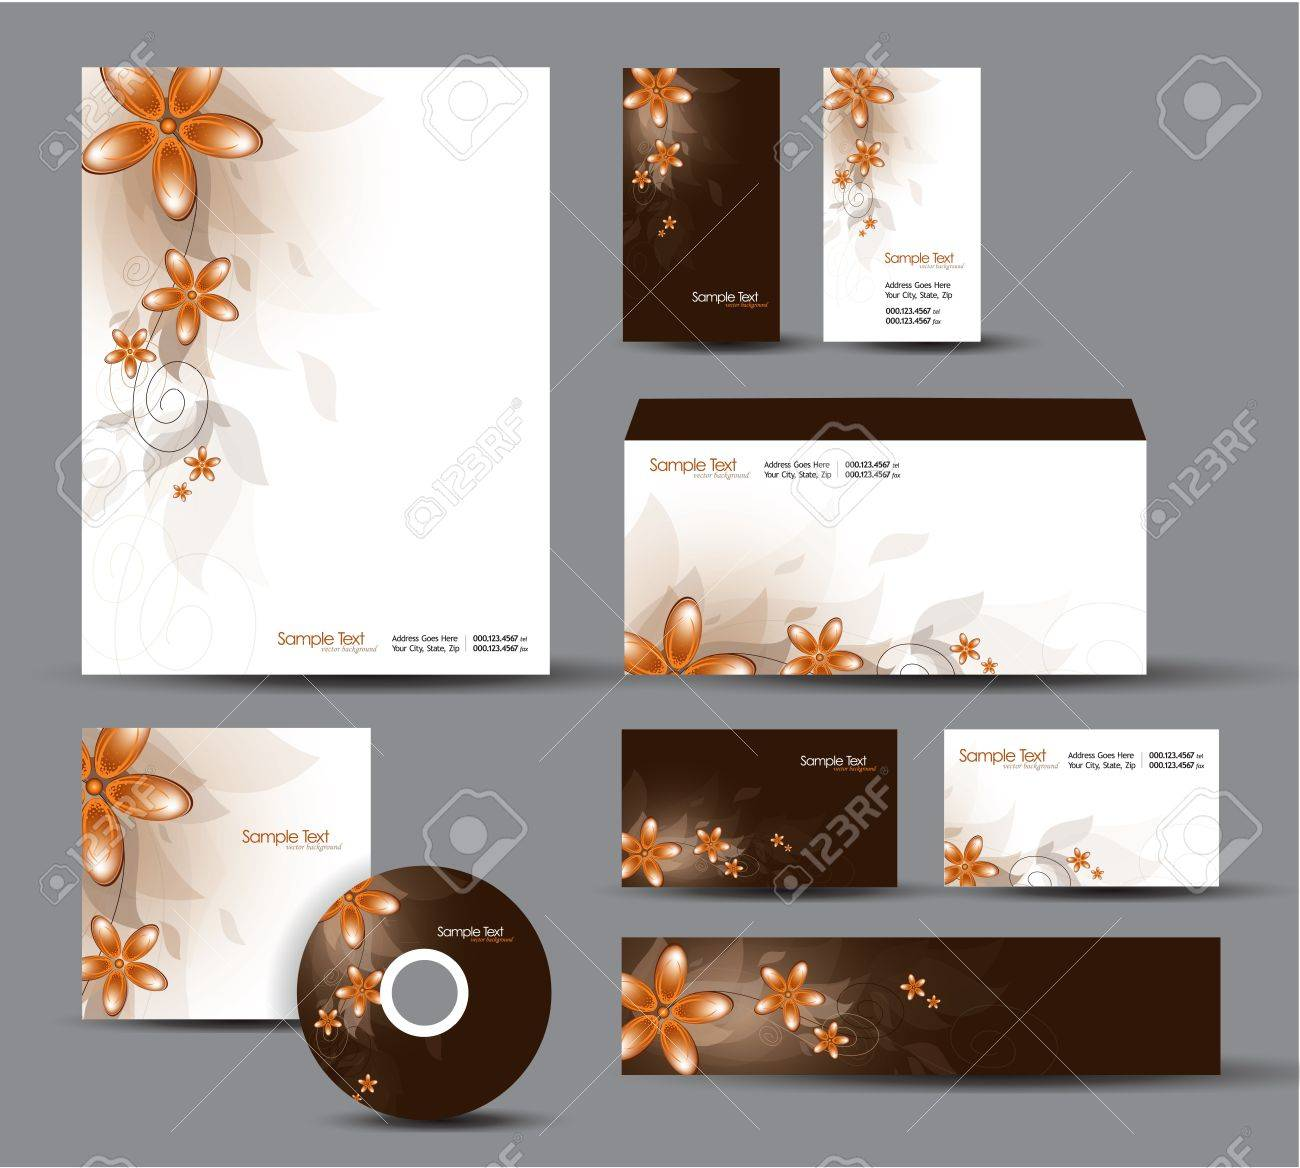 Modern Identity Package  Letterhead, business gift cards, envelope, cd dvd, header banner Stock Vector - 18243003